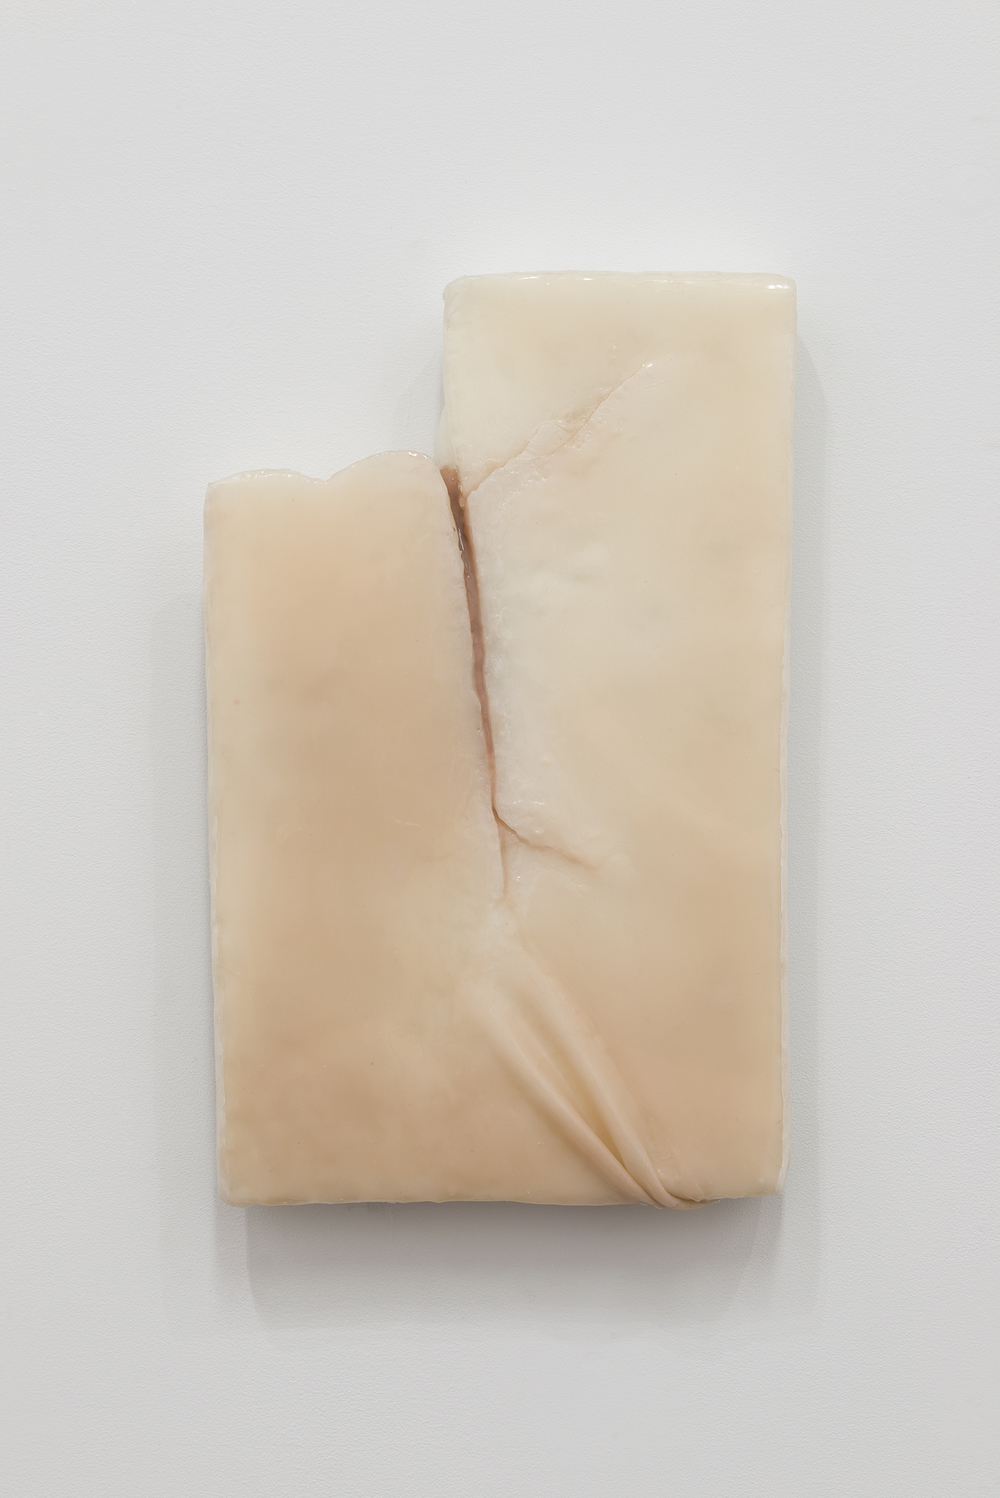 Ivana Basic,  Ungrounding , 2014, wax, silicon, linoleum, 19.5 x 13 x 2.5 in